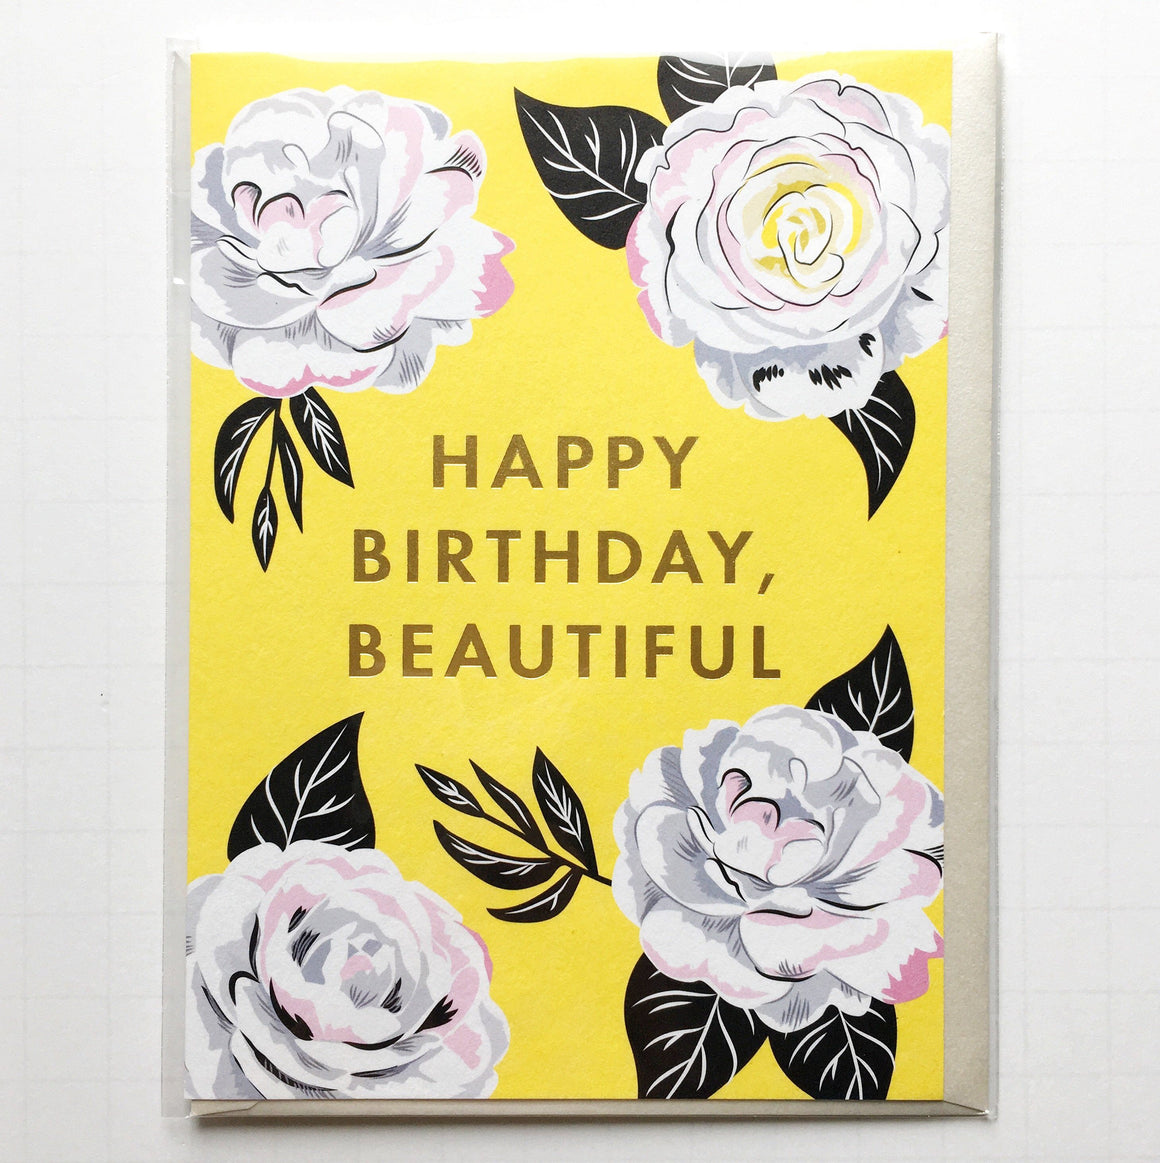 GREETING CARD - FLORAL HAPPY BIRTHDAY BEAUTIFUL, GIFT GIVING, WASTE NOT PAPER - Bon + Co. Party Studio